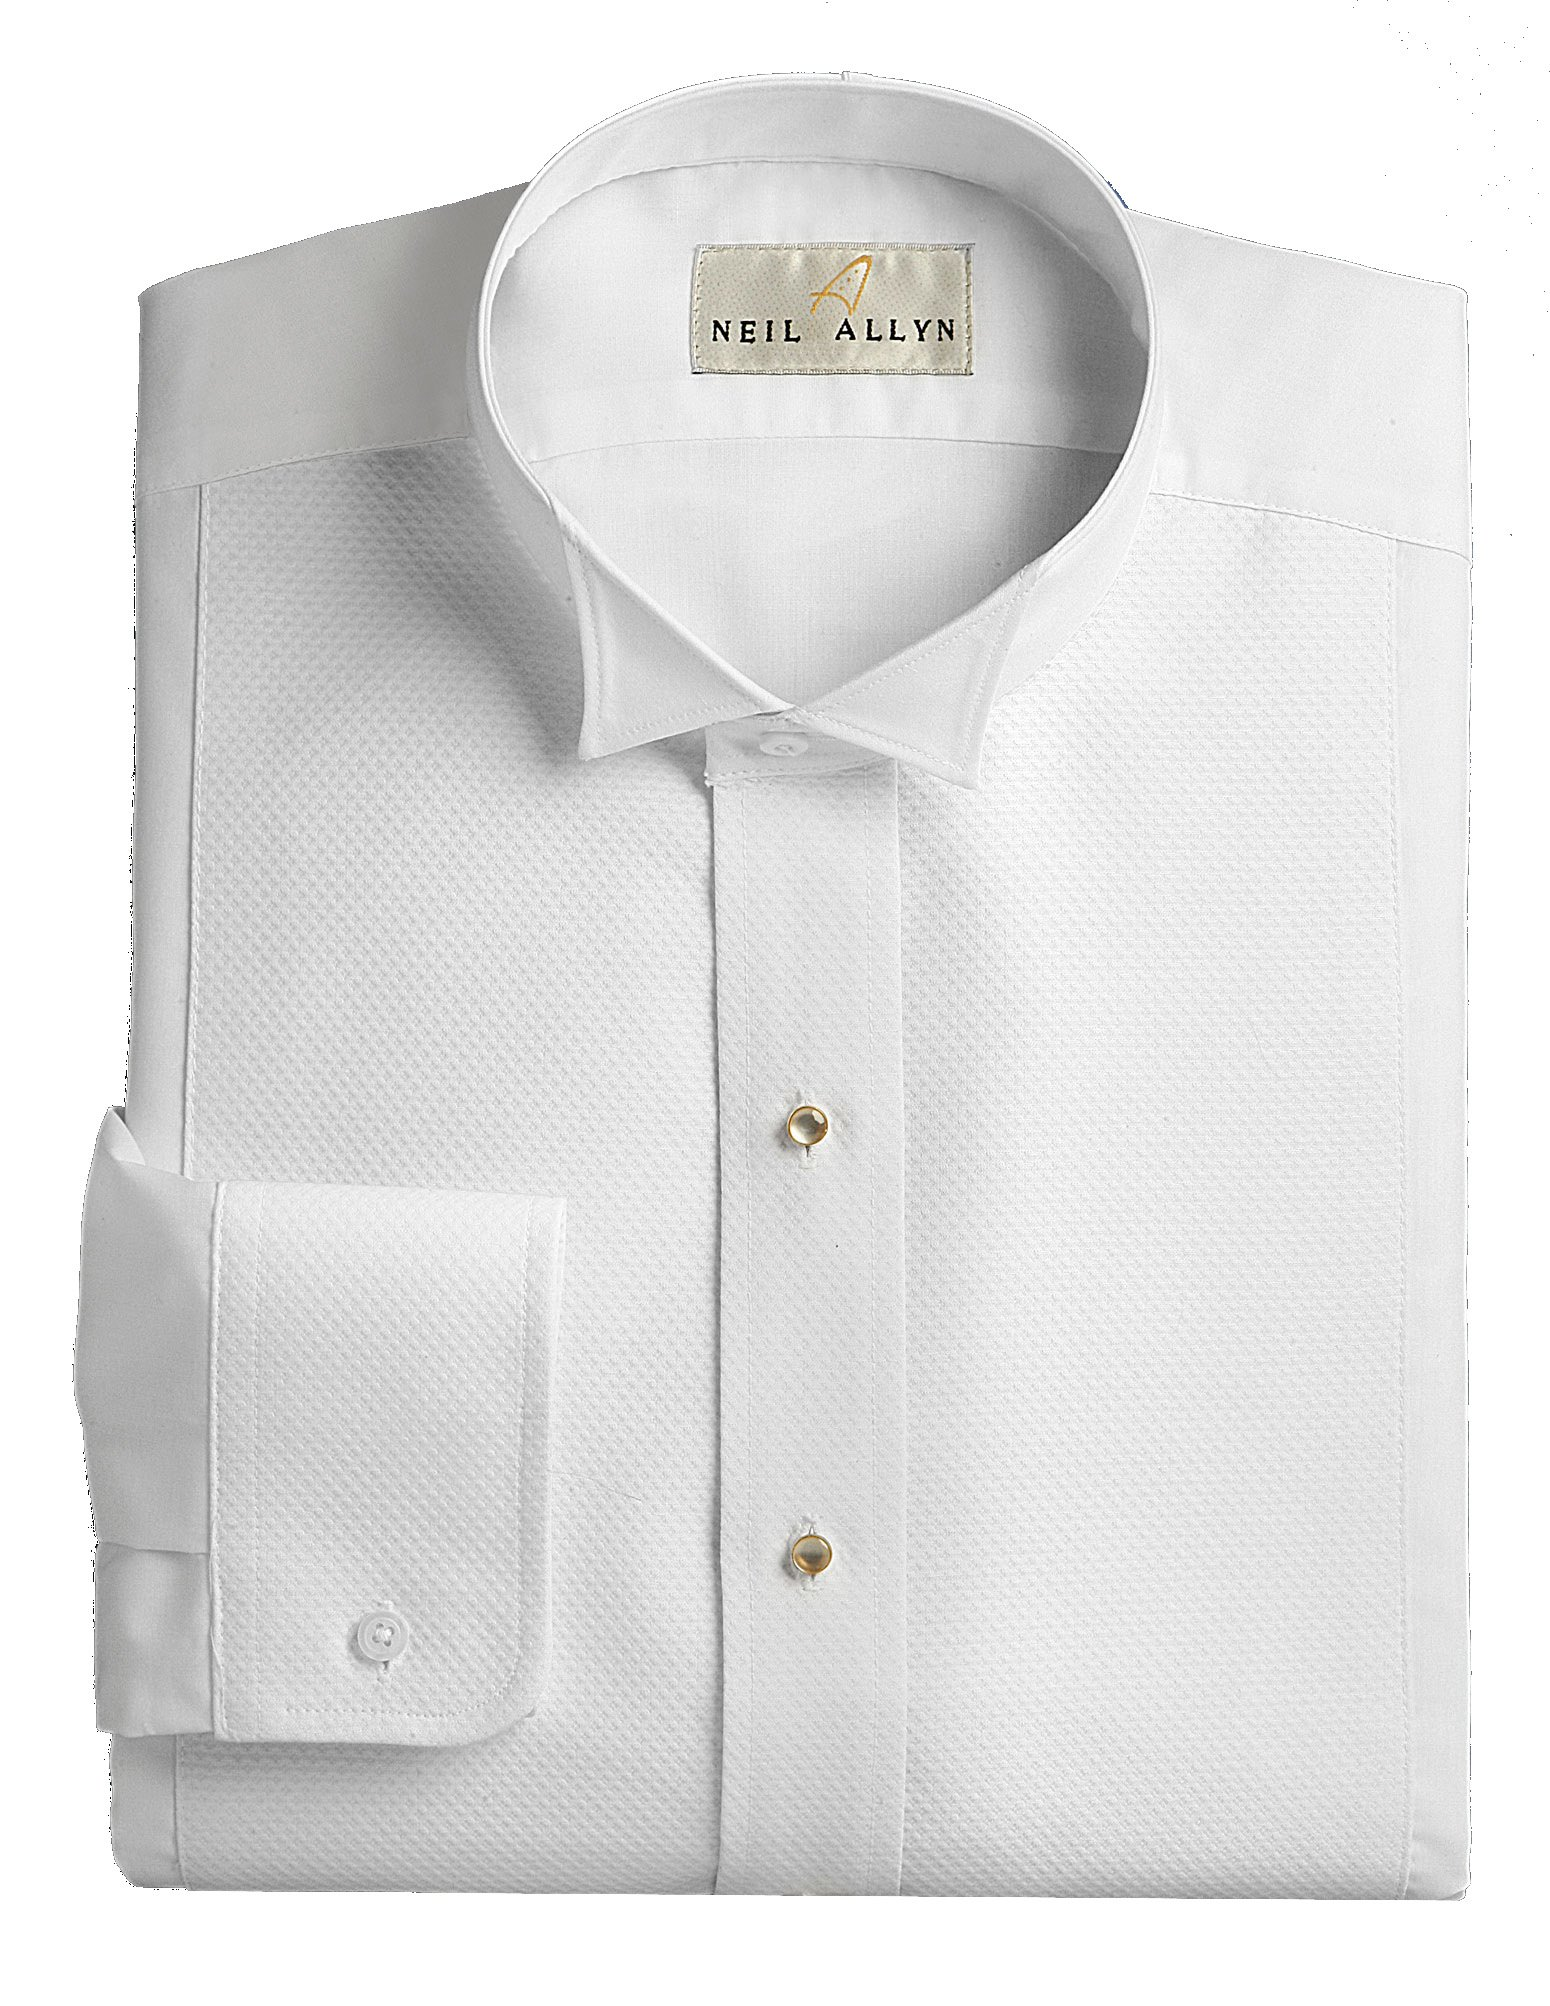 Wing Collar Tuxedo Shirt, Pique Bib Front, 65% Polyester 35% Cotton White (16.5 - 32/33) by Neil Allyn